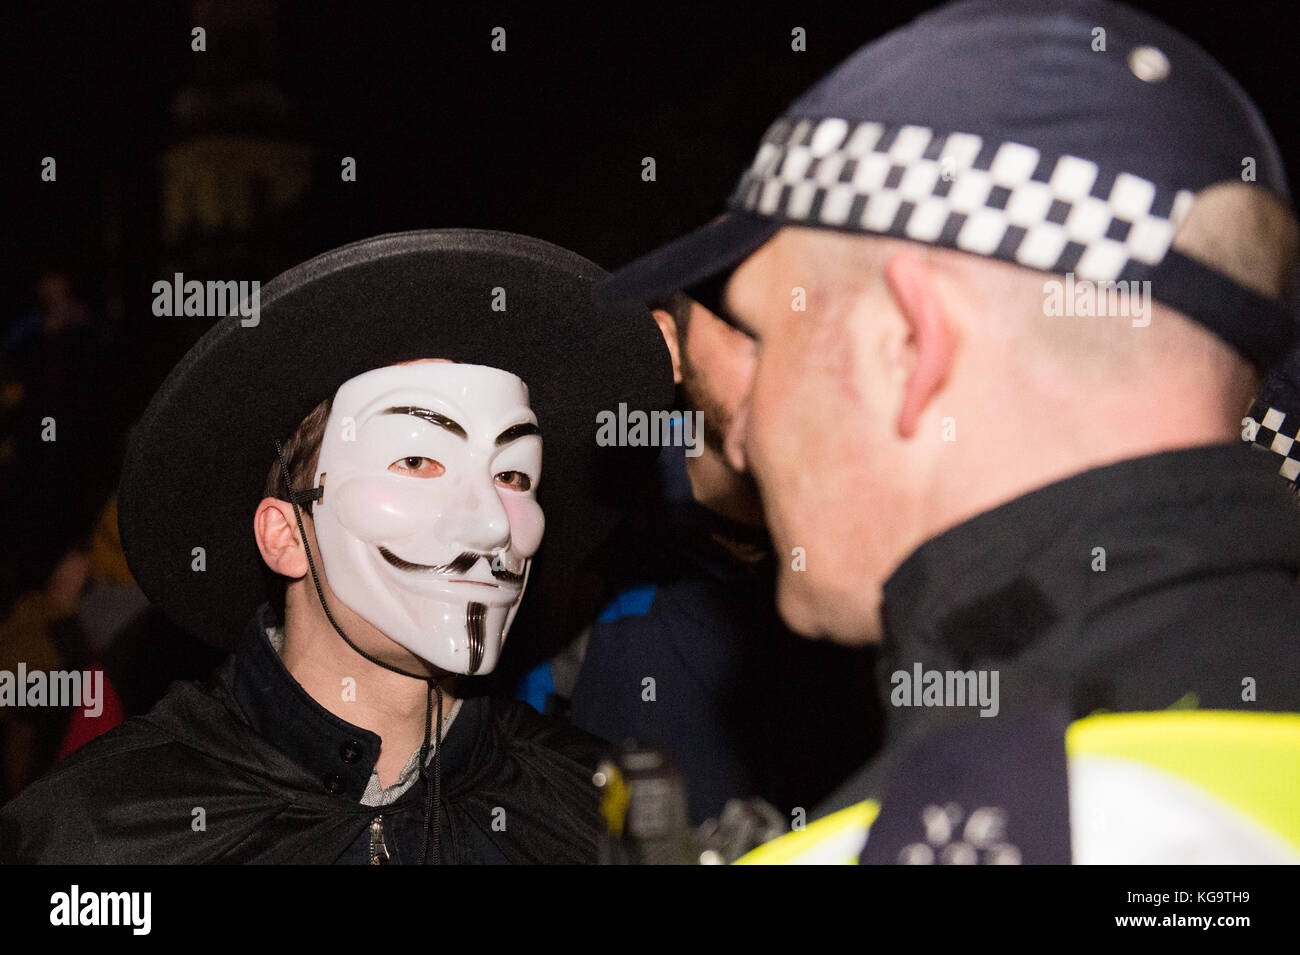 London, United Kingdom. 05th Nov, 2017. Million Mask March 2017 takes place in central London.A protester in a Guy Stock Photo